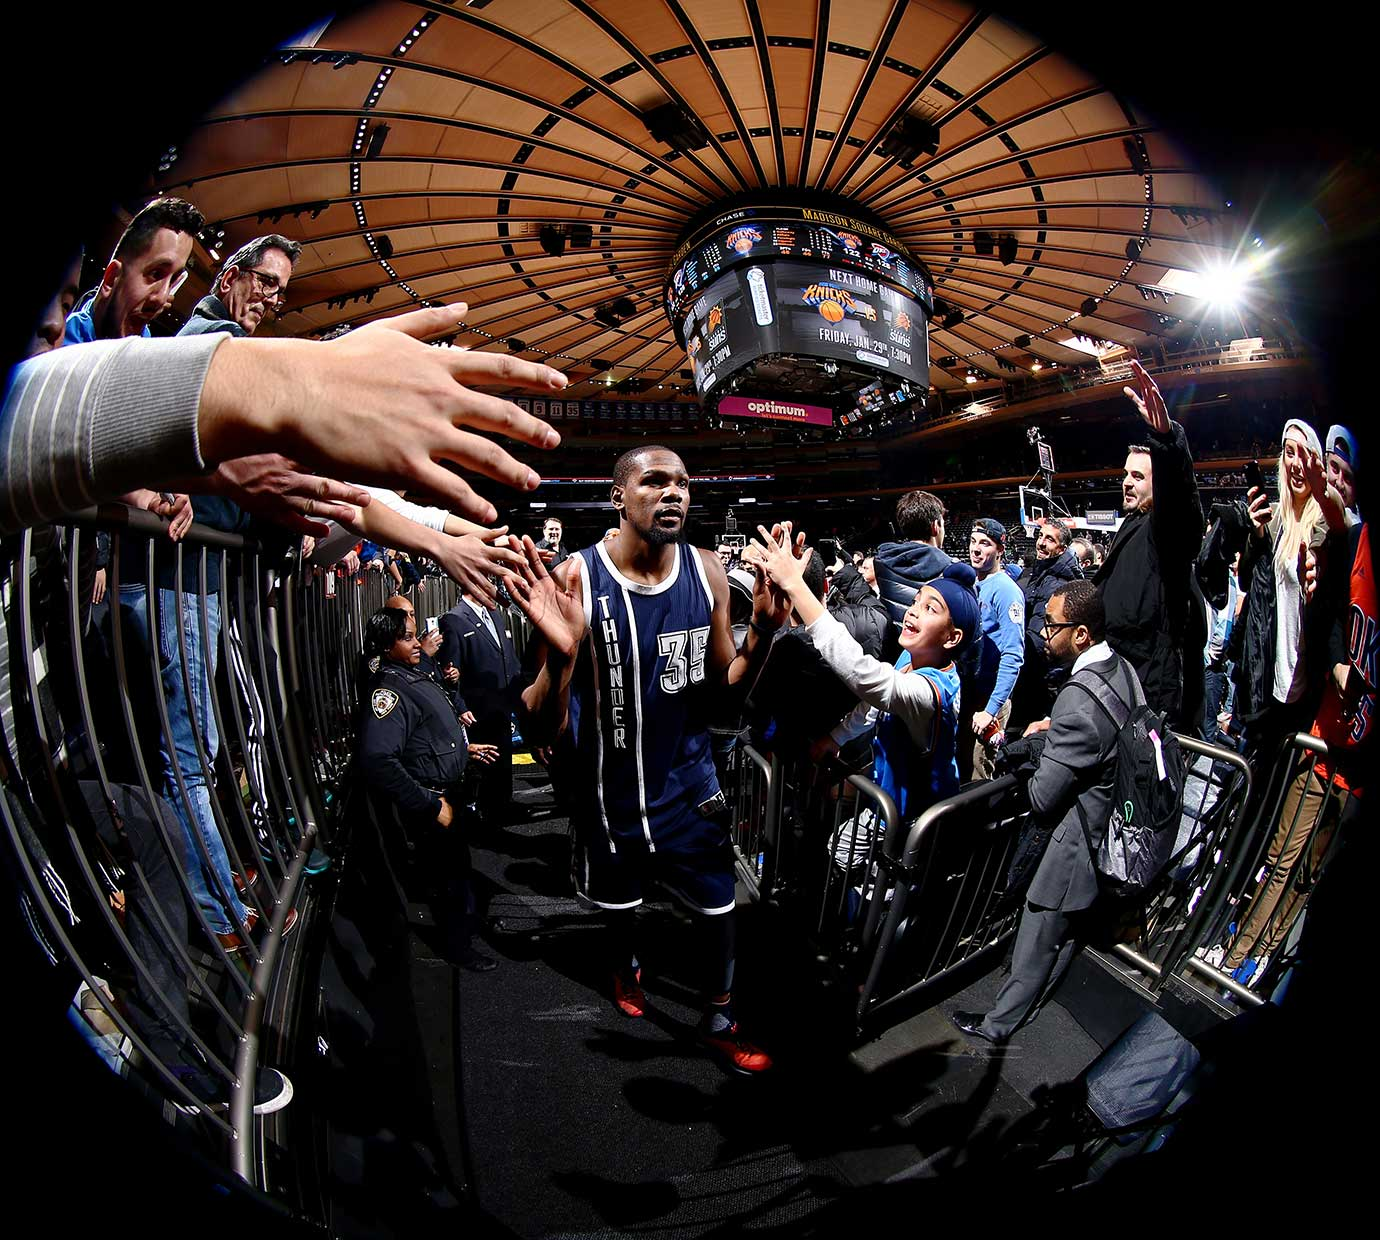 Kevin Durant of the Oklahoma City Thunder after the game against the New York Knicks at Madison Square Garden in New York.